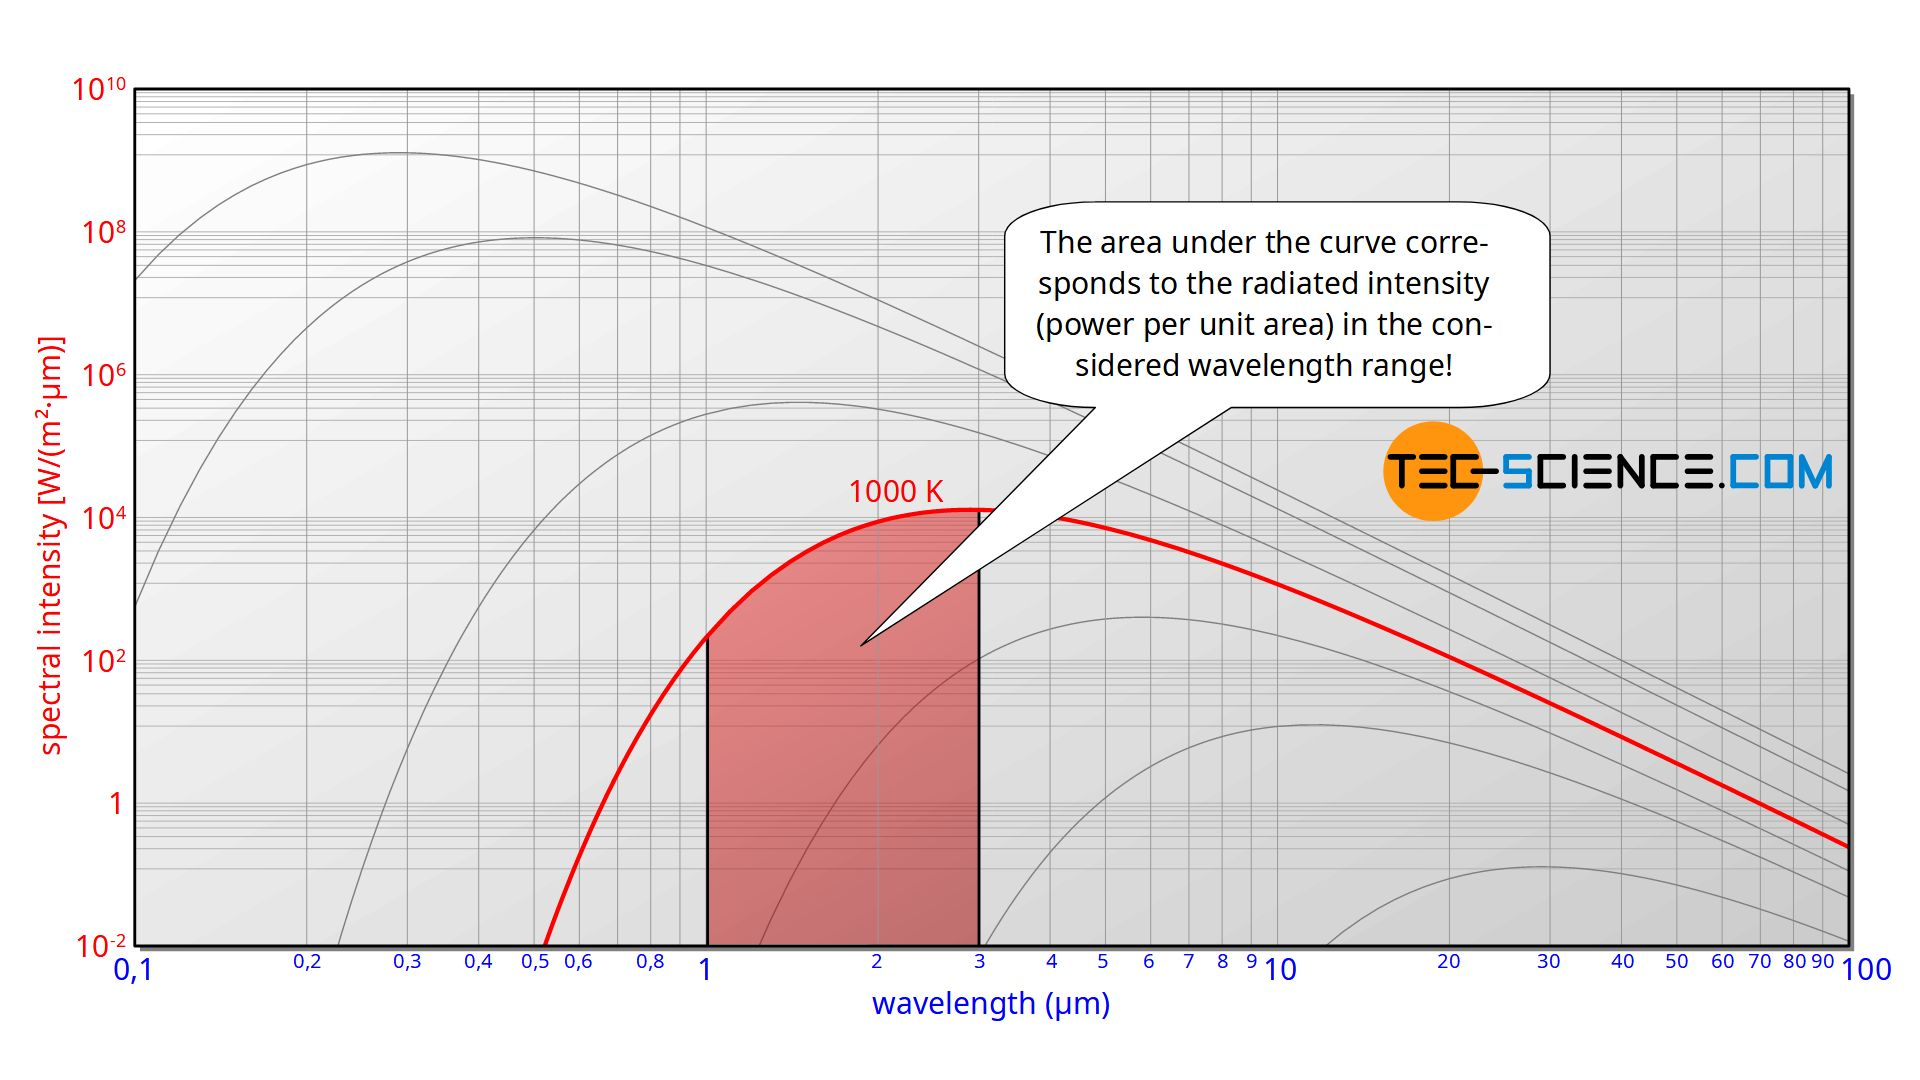 Interpretation of the area under the spectral intensity curve